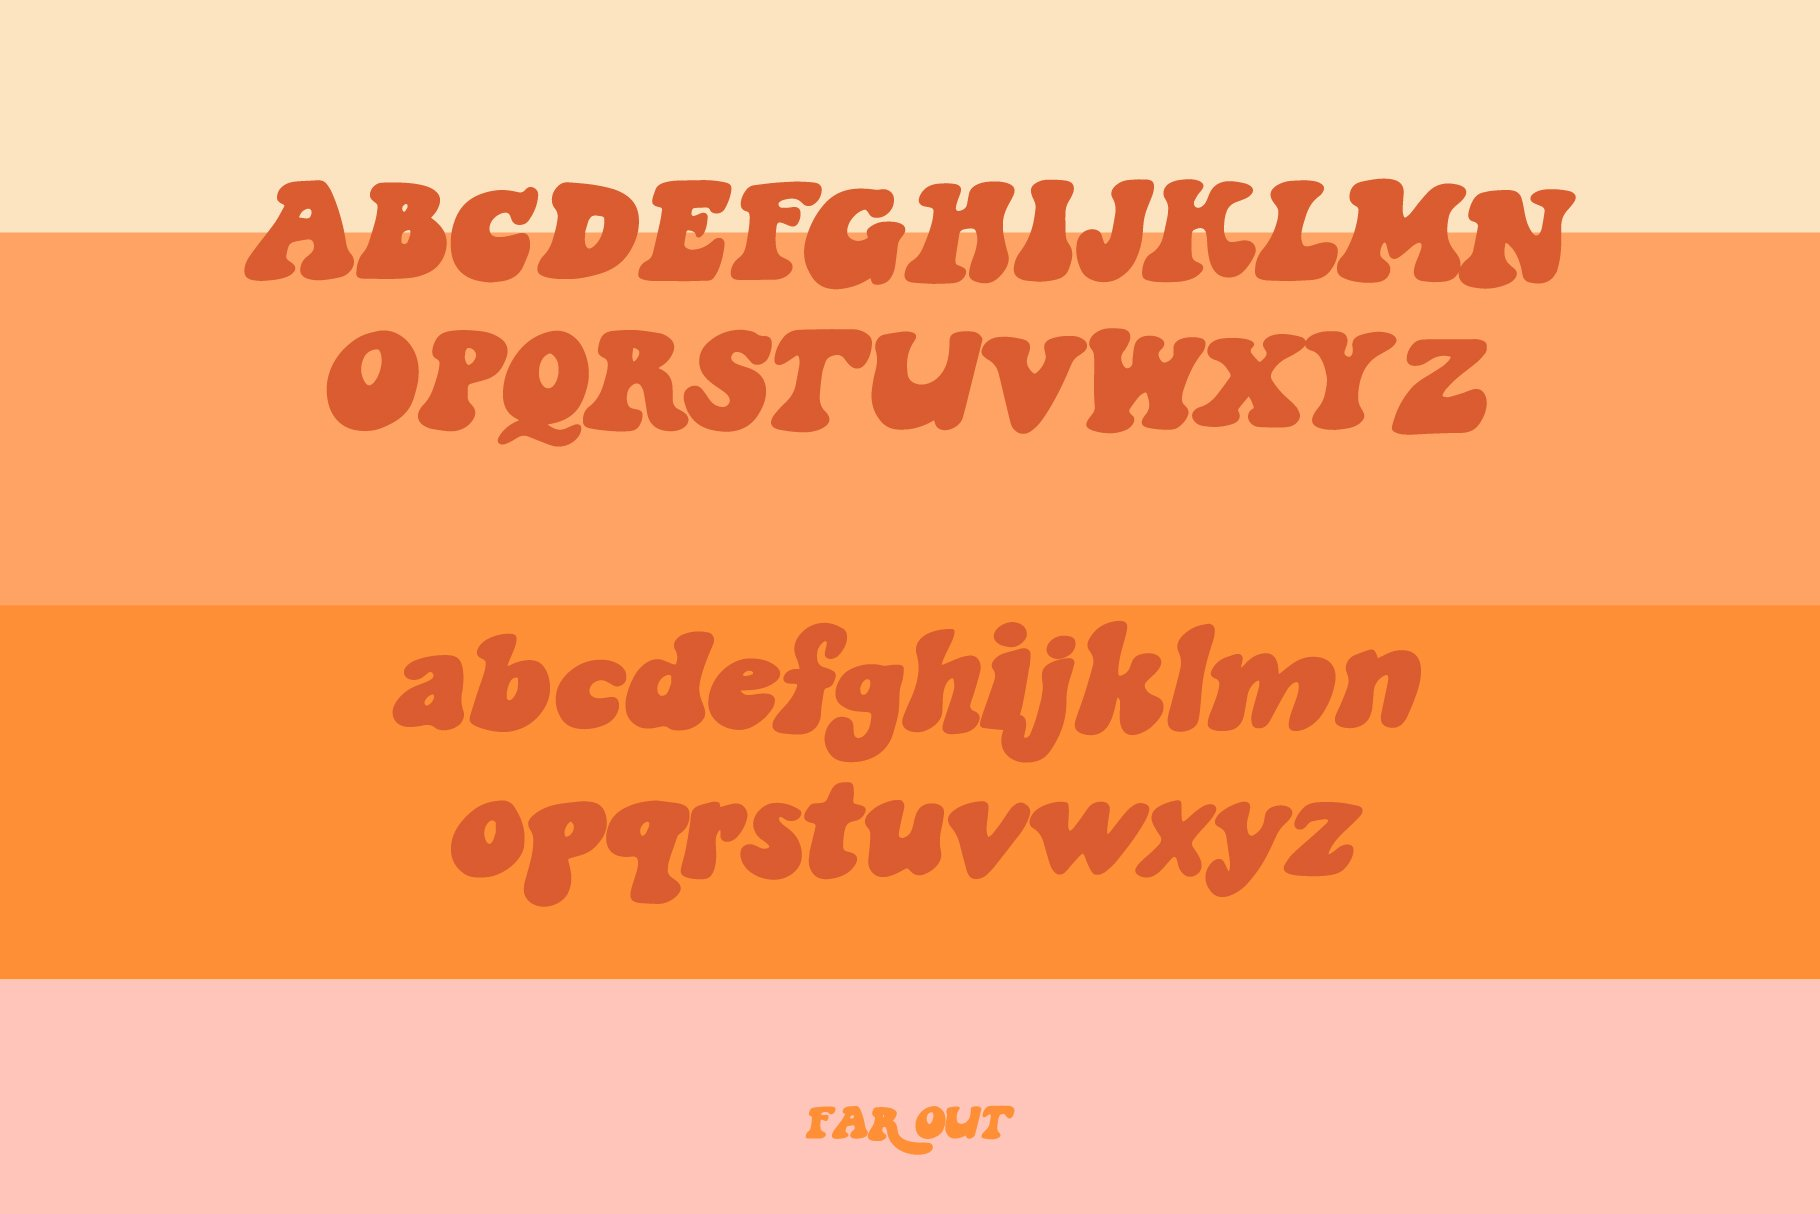 Far Out! - A Groovy Typeface example image 2